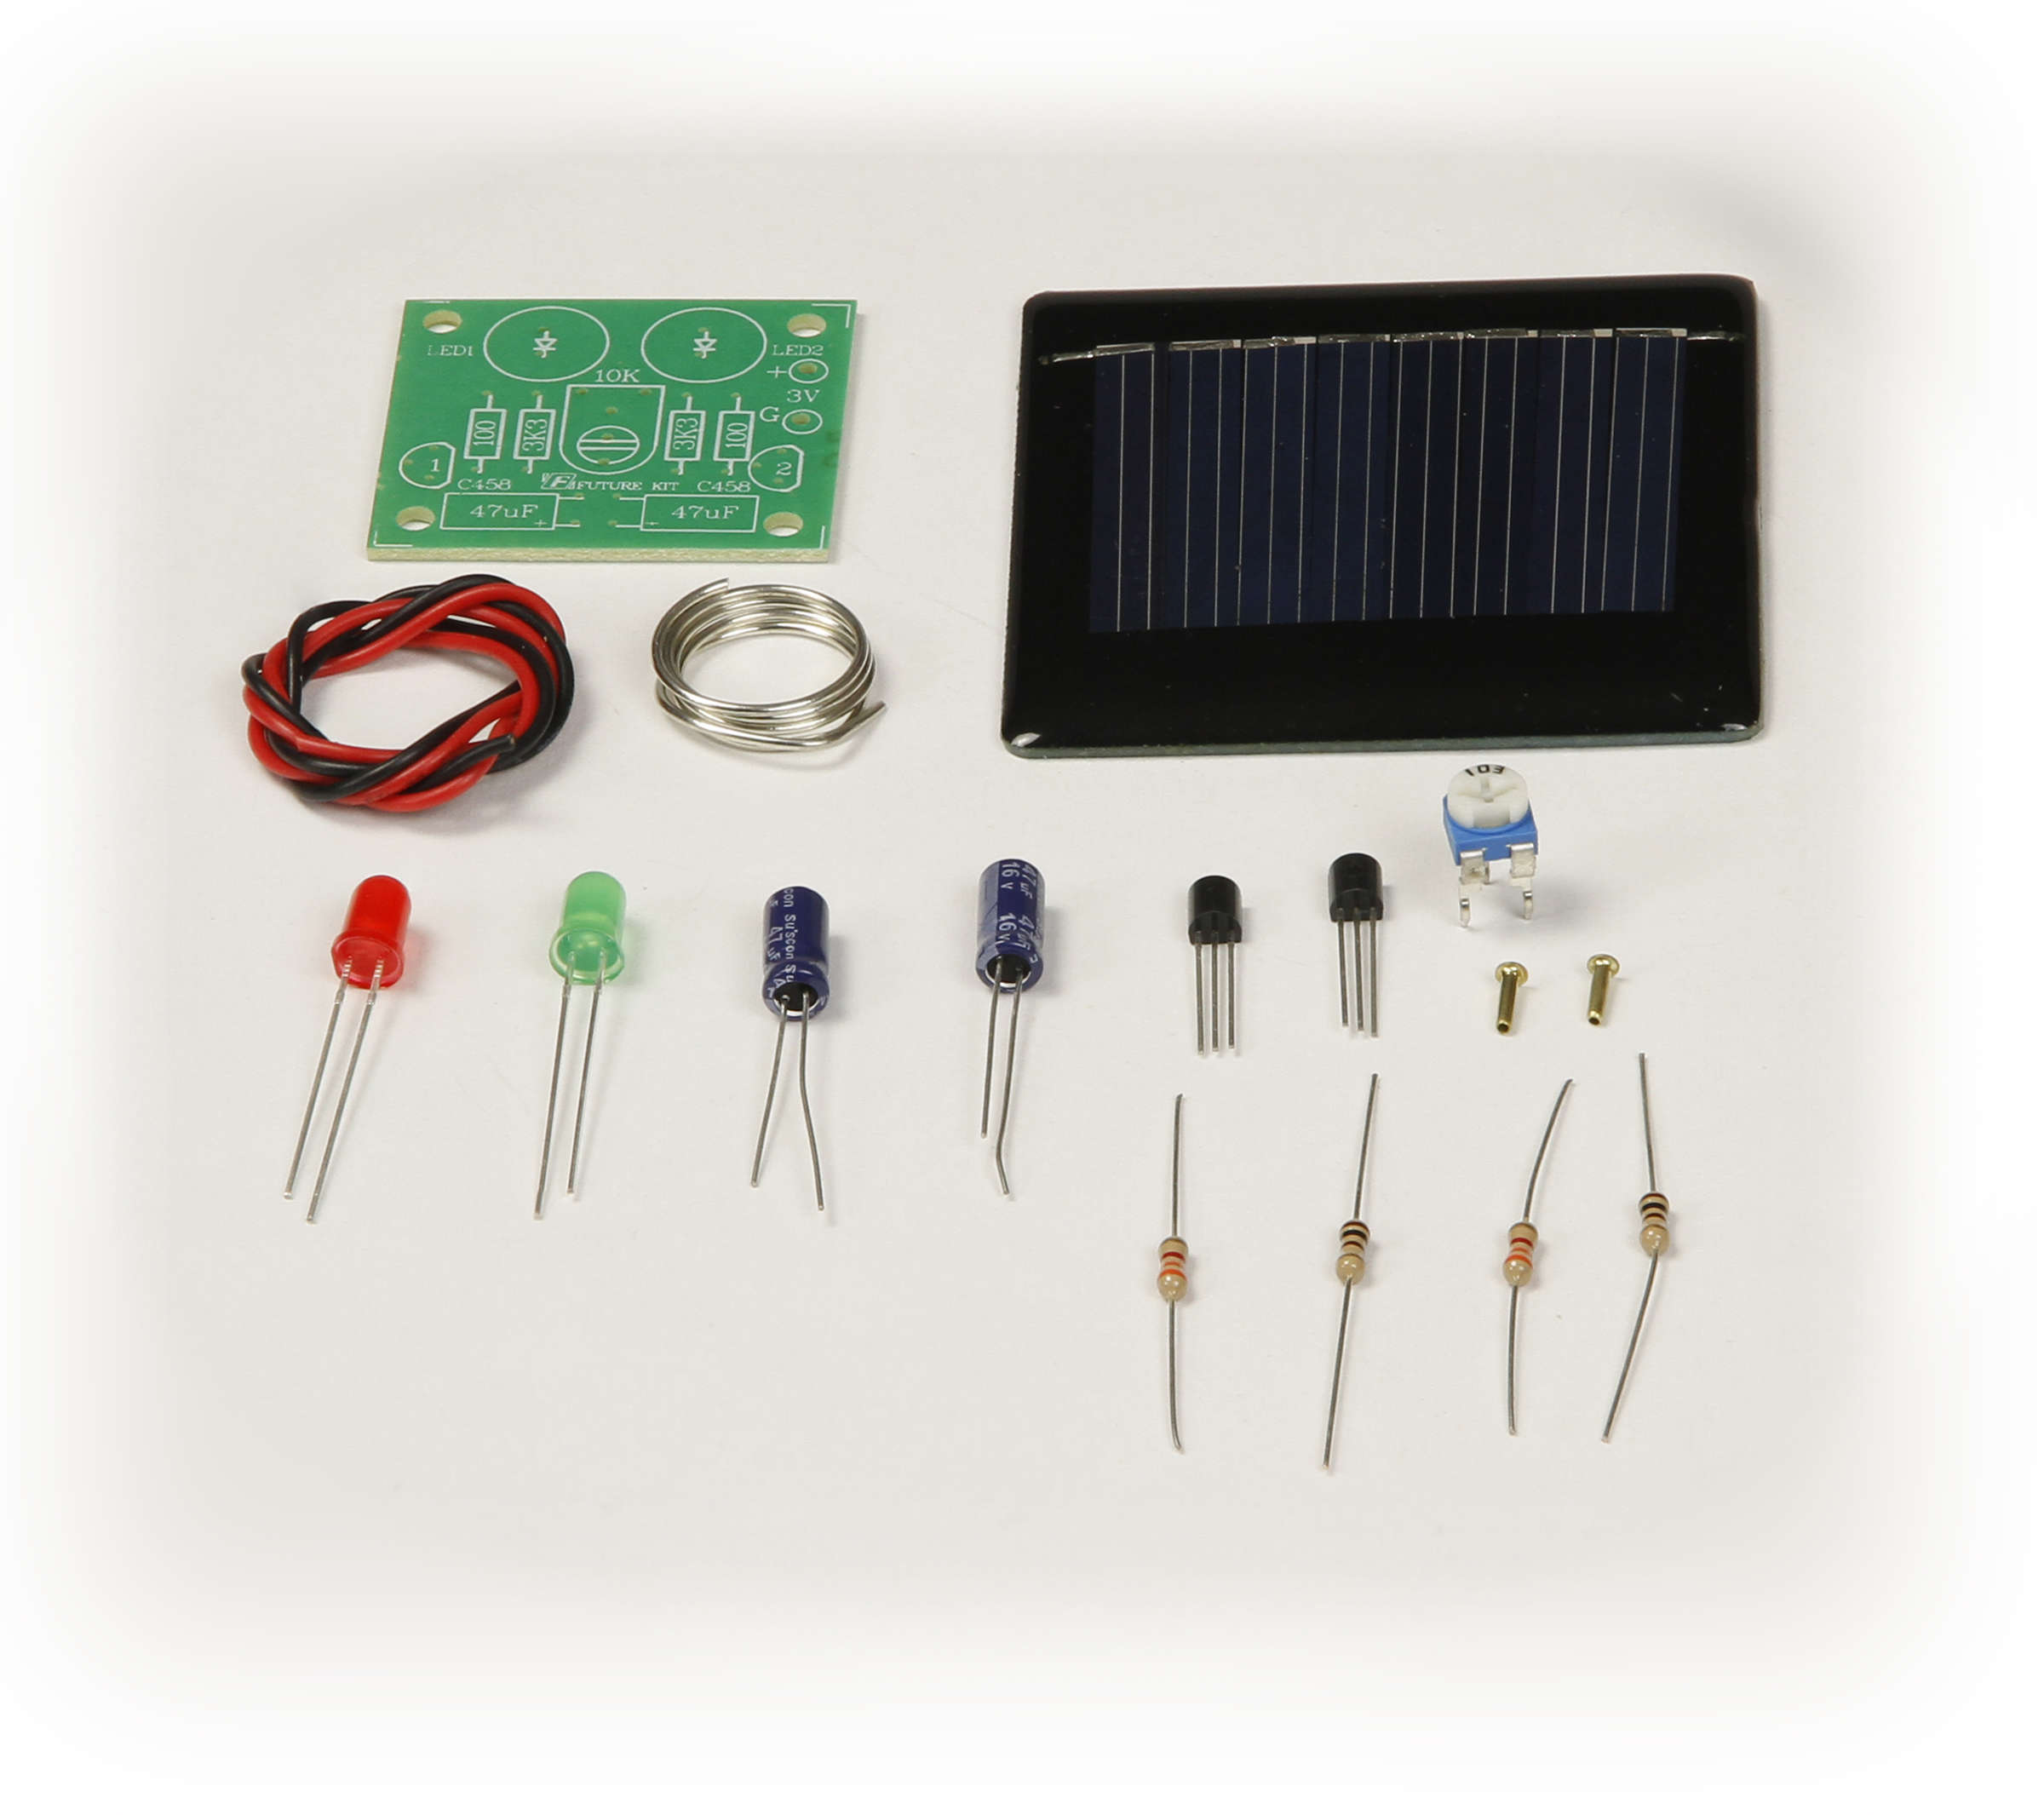 Gsk 1005 Solar Led Blinking Light Kit Blinked To Blink An You Need Some Kind Of Electronic Circuit Global Specialties Photo